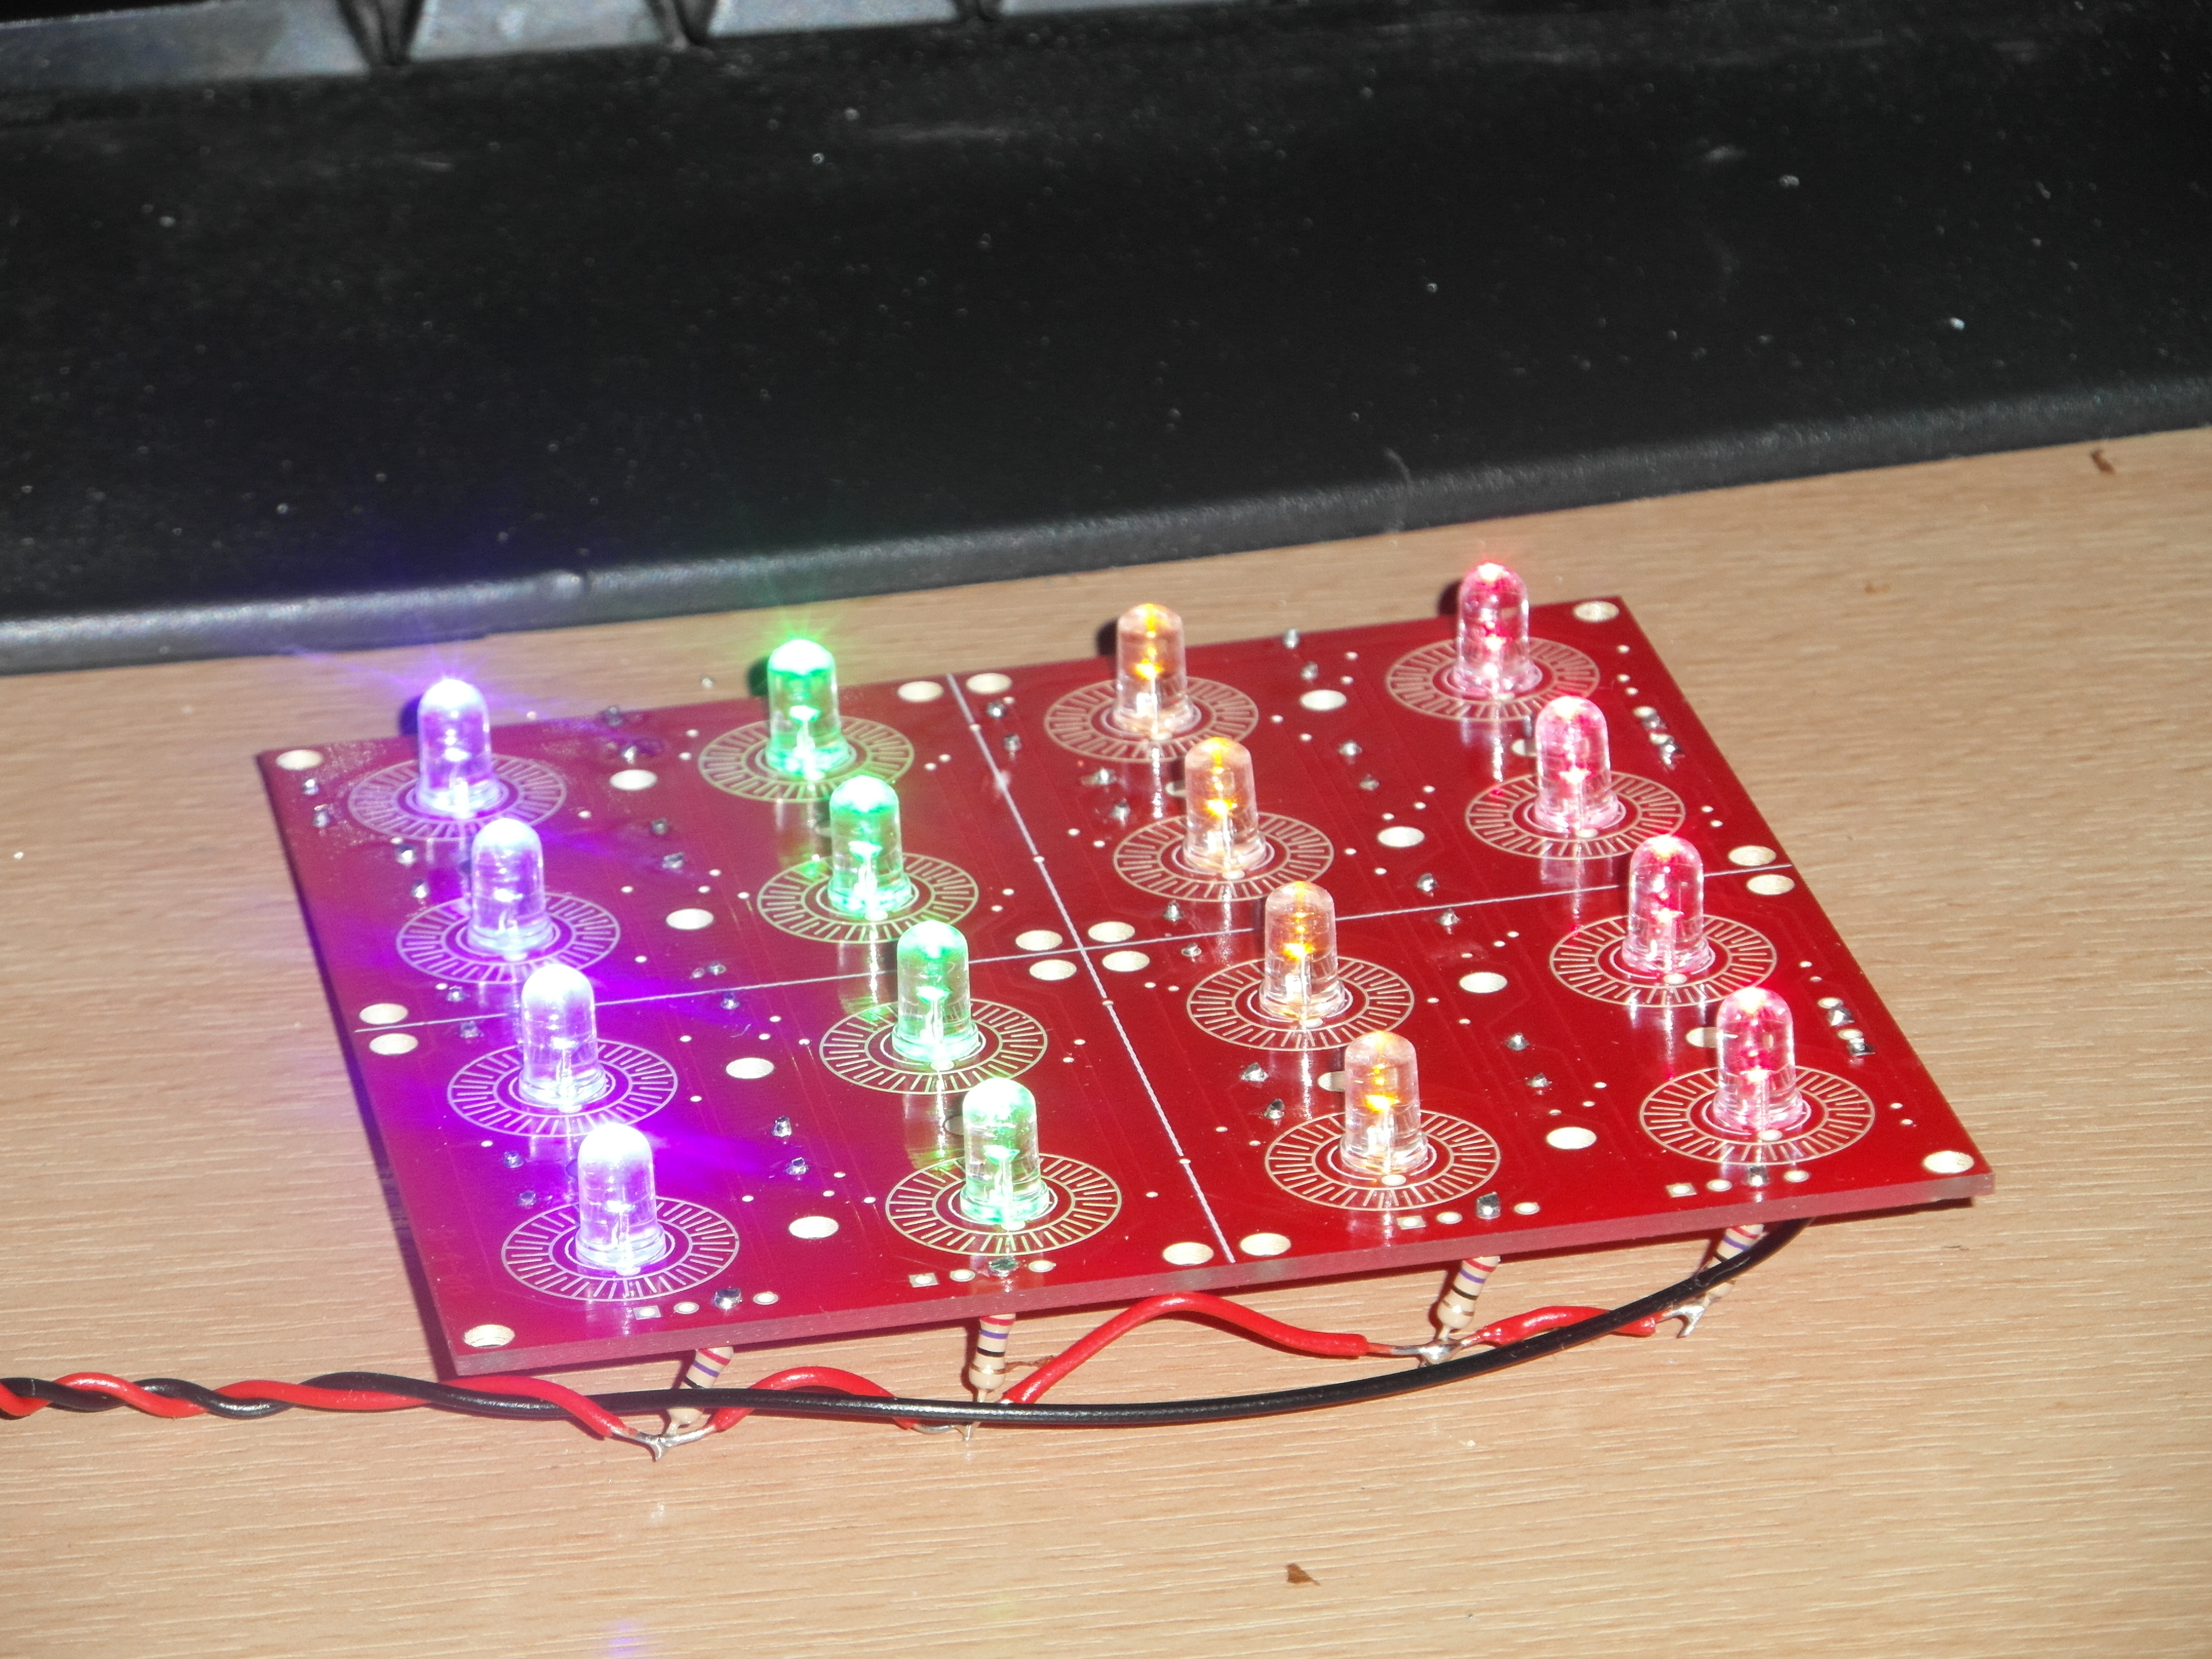 LEDs installed on button board